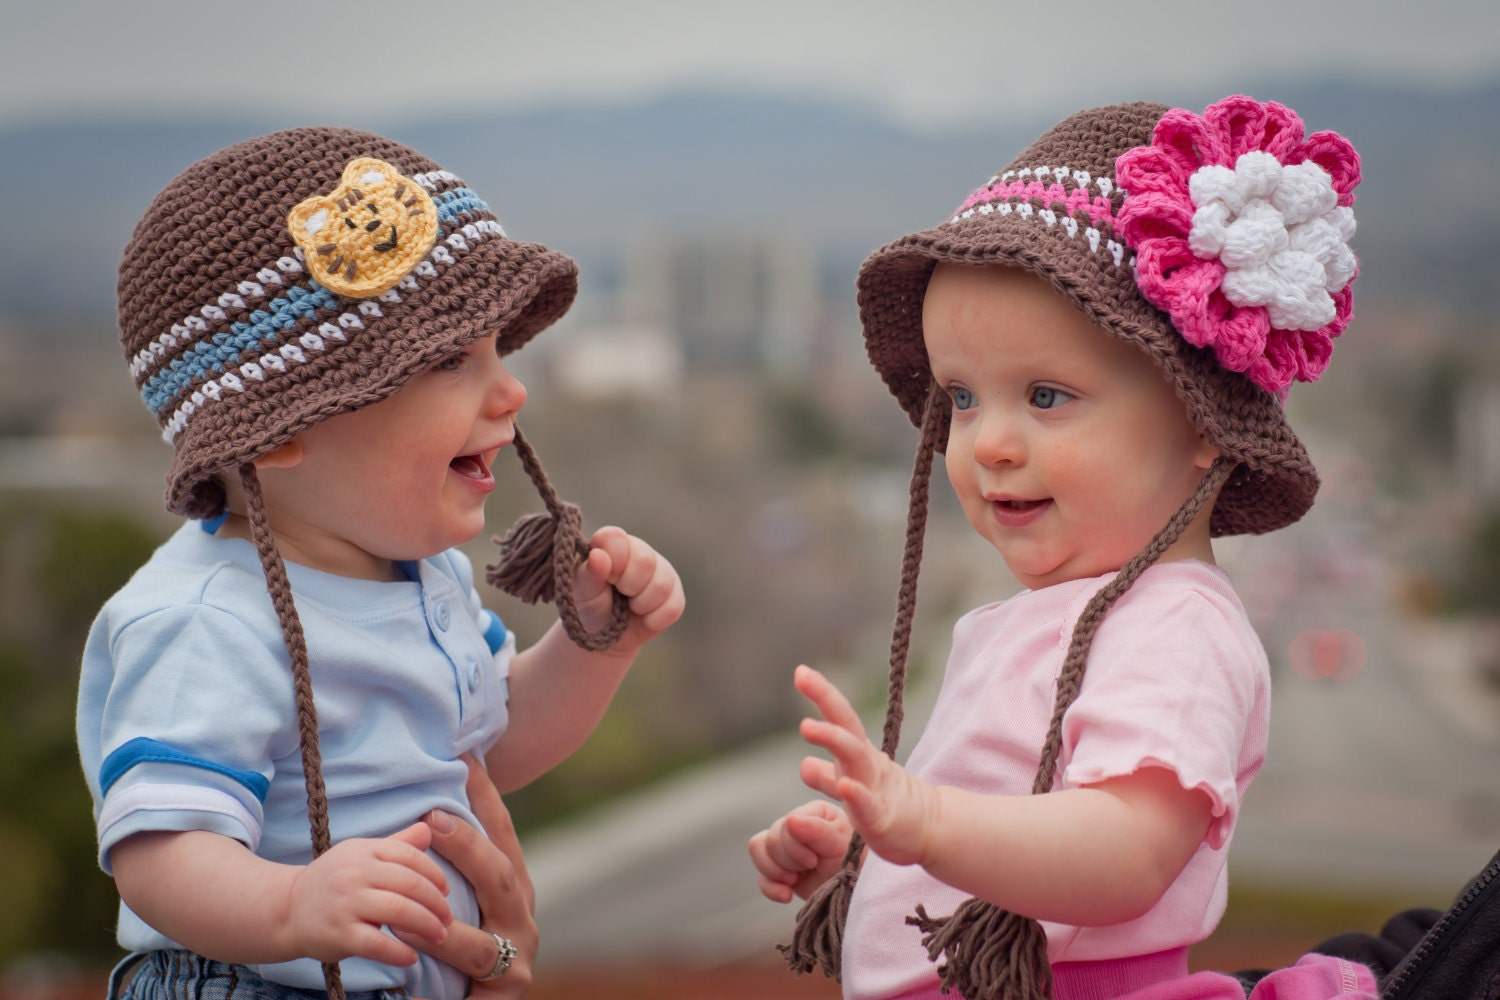 Cute Baby Twins Boy And Girl Baby Twins Boy And Girl Tumblr